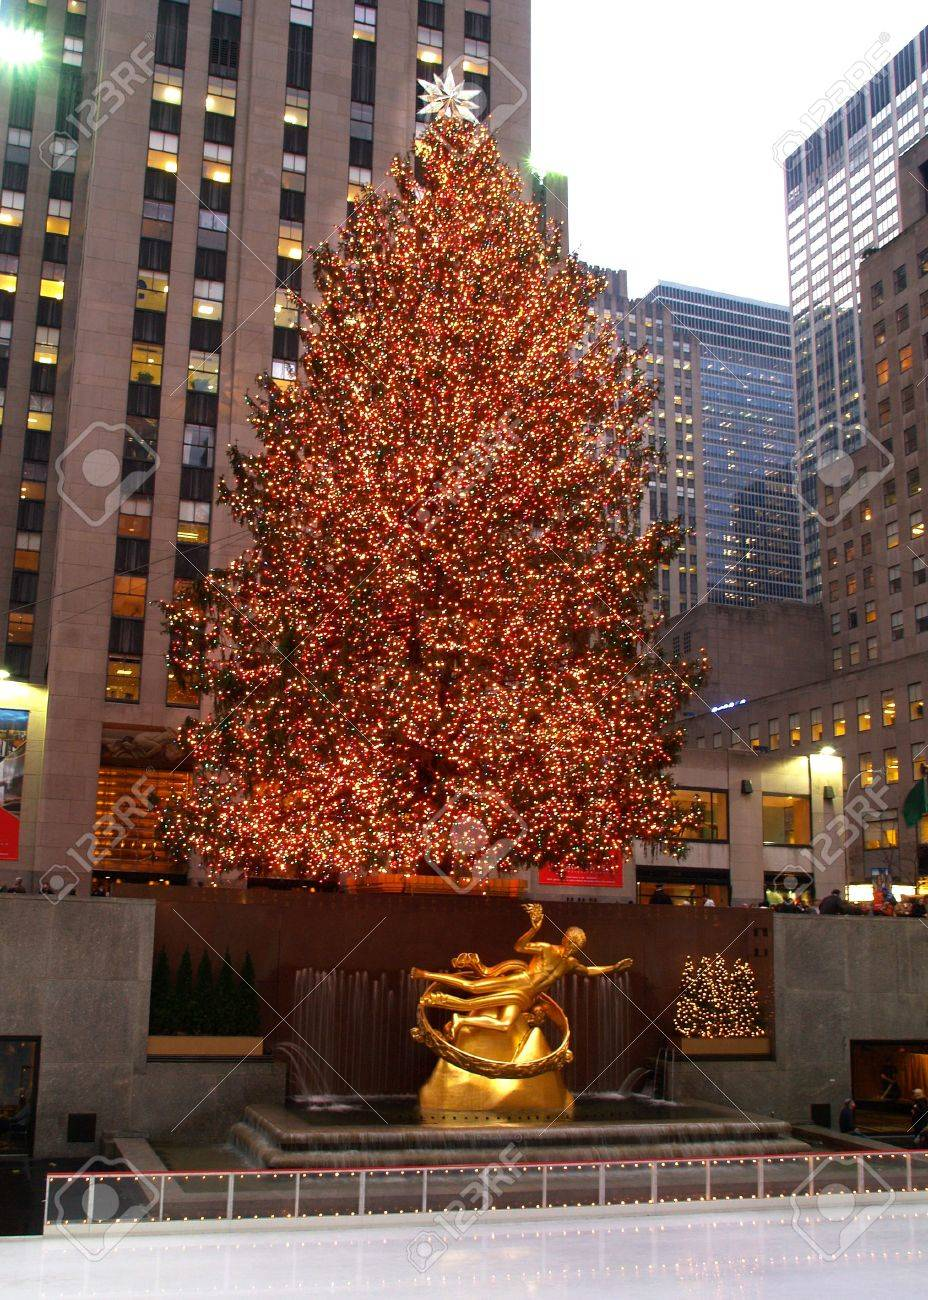 Christmas Tree Lighting At Rockefeller Center In NYC Stock Photo ...